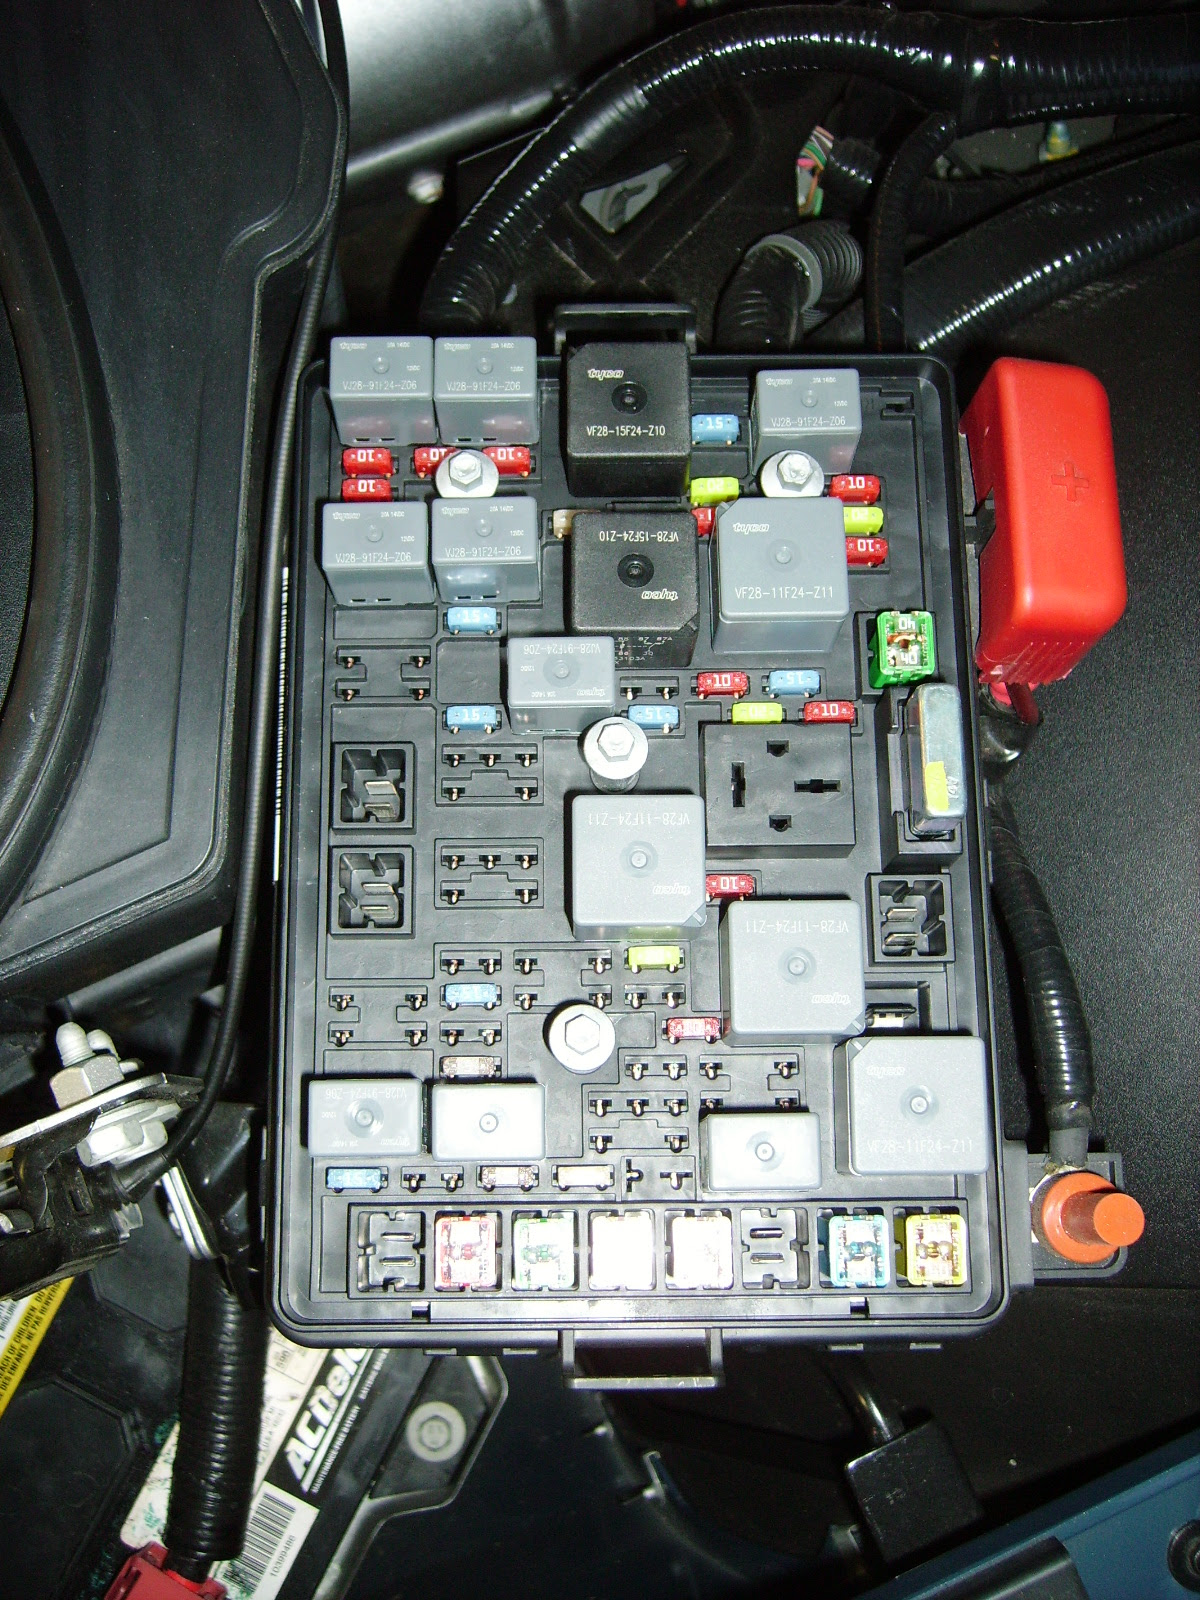 Wiring Site Resource: 2008 Chevy Cobalt Fuse Box Diagram